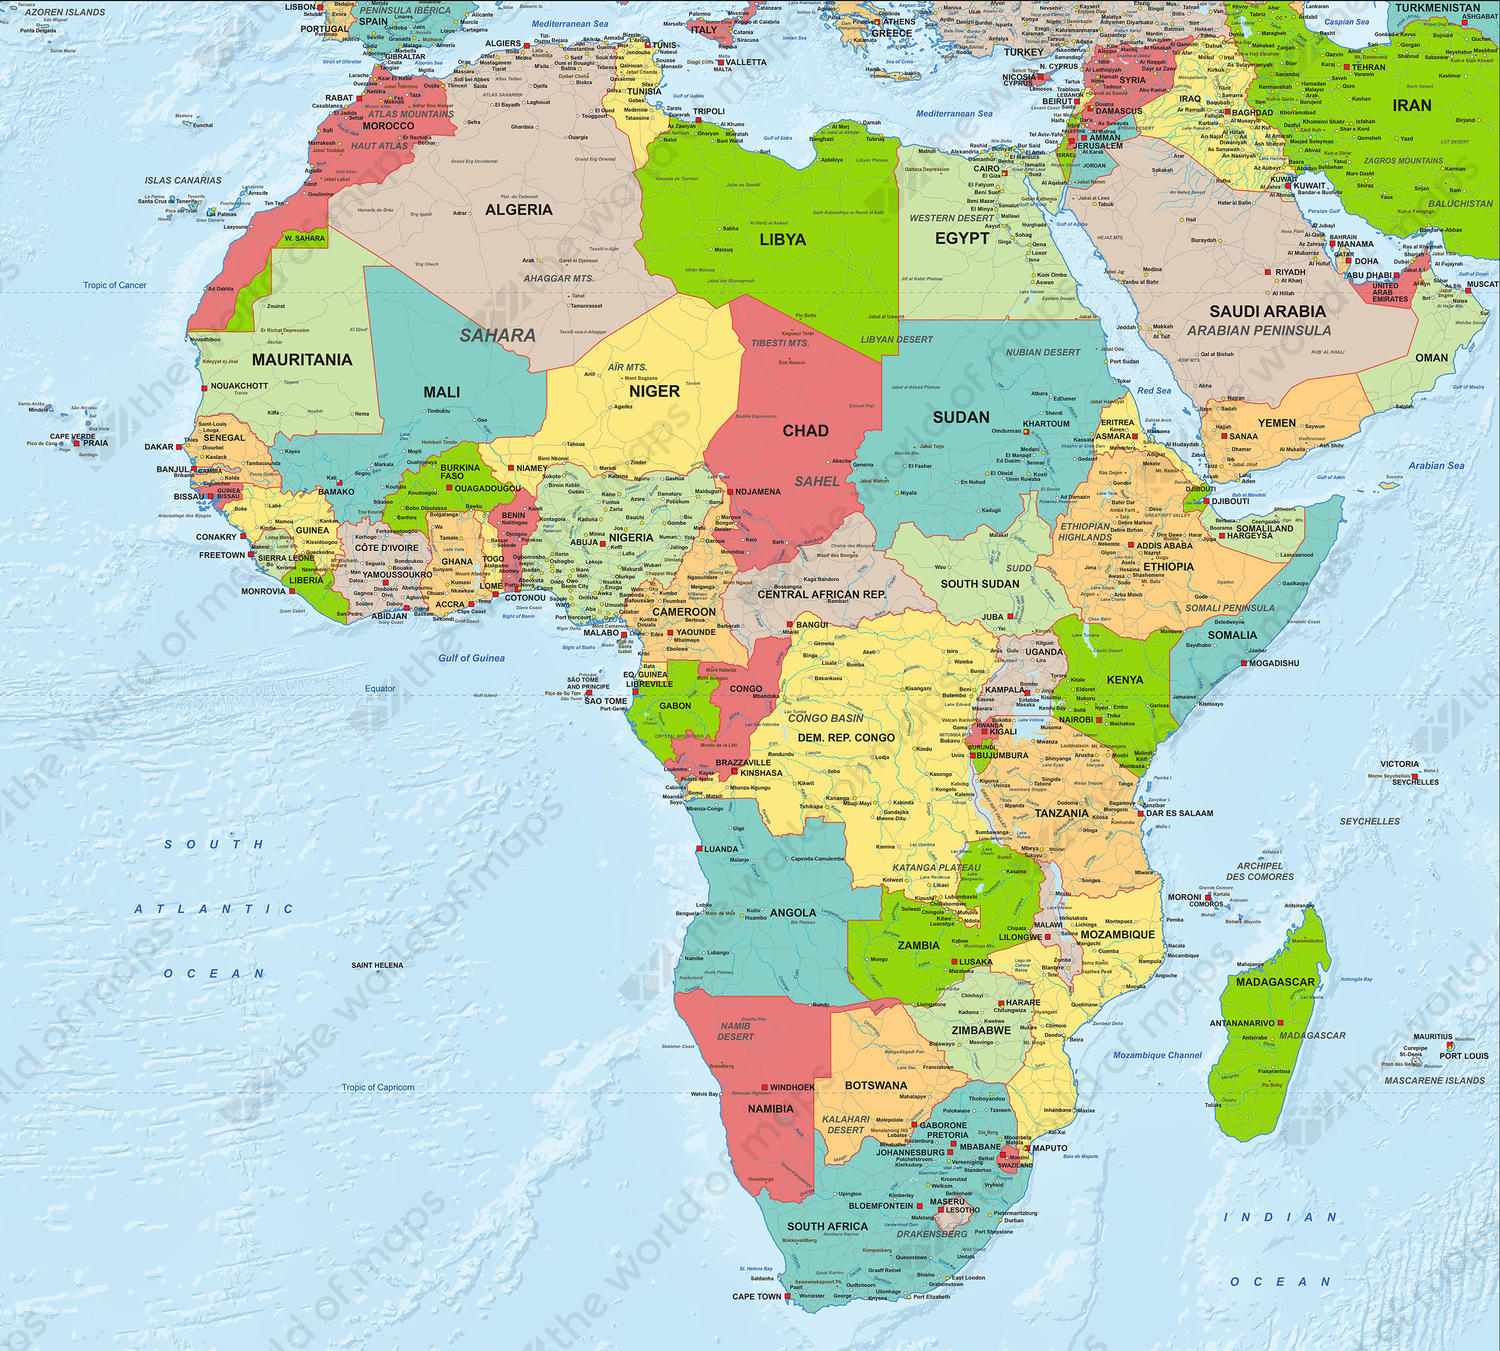 Digital Political Map Africa 1282 The World of Mapscom